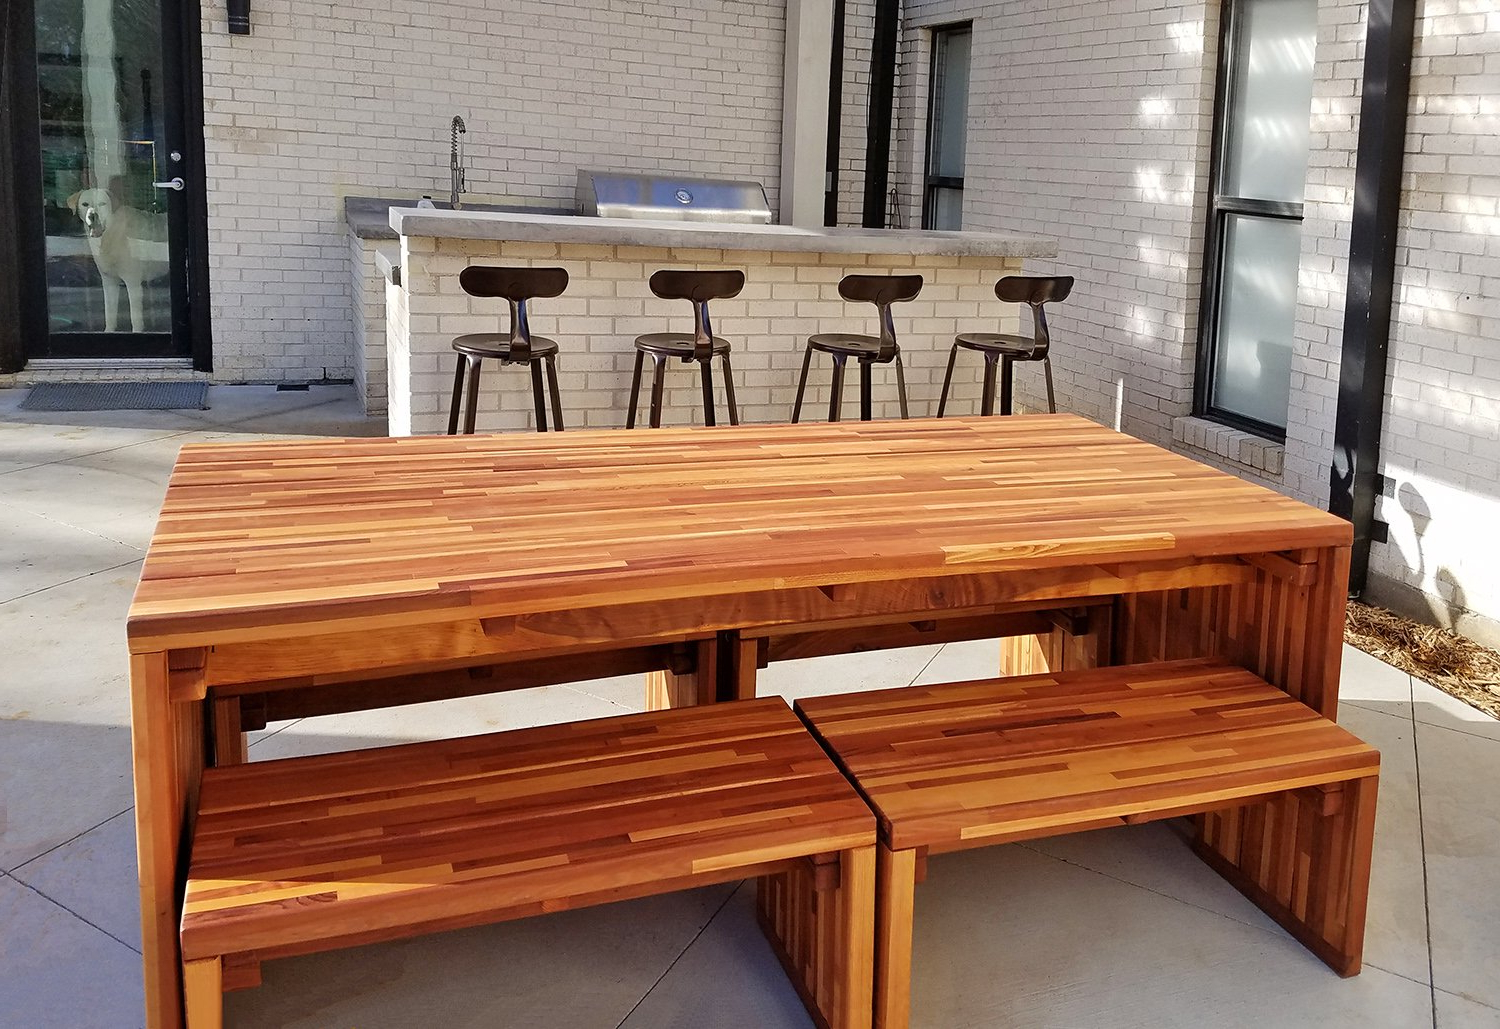 Forever Redwood Pertaining To Most Up To Date Maynard 5 Piece Dining Sets (View 6 of 25)